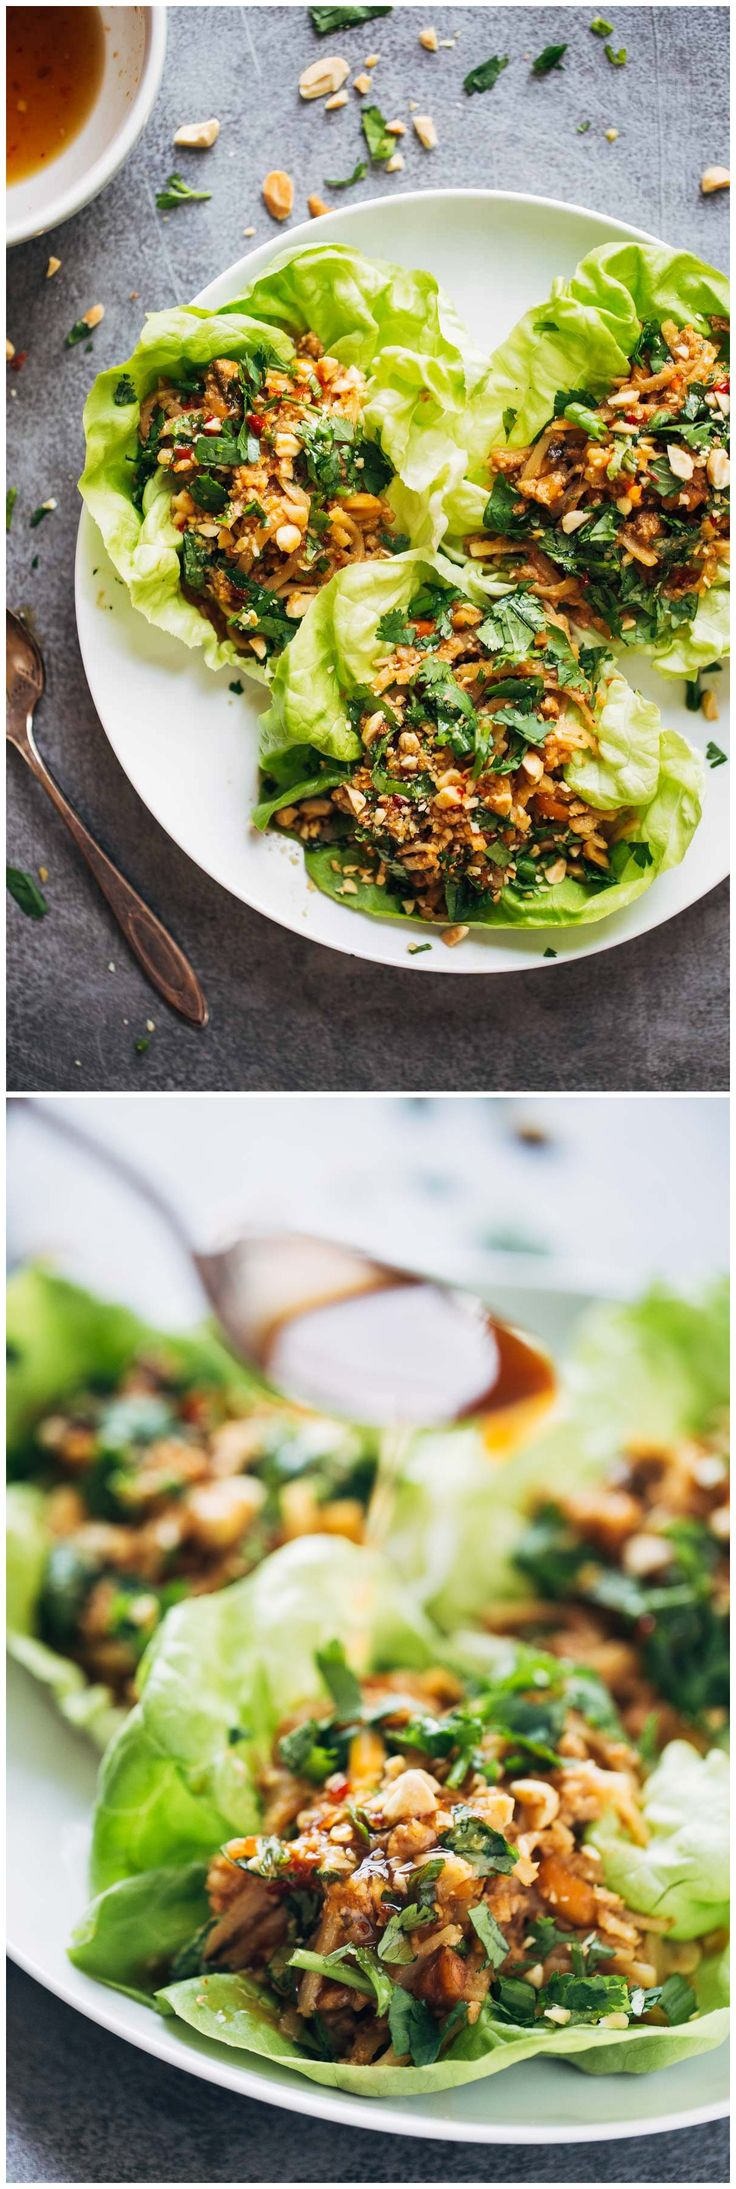 PEANUT CHICKEN LETTUCE WRAPS WITH GINGER GARLIC SAUCE